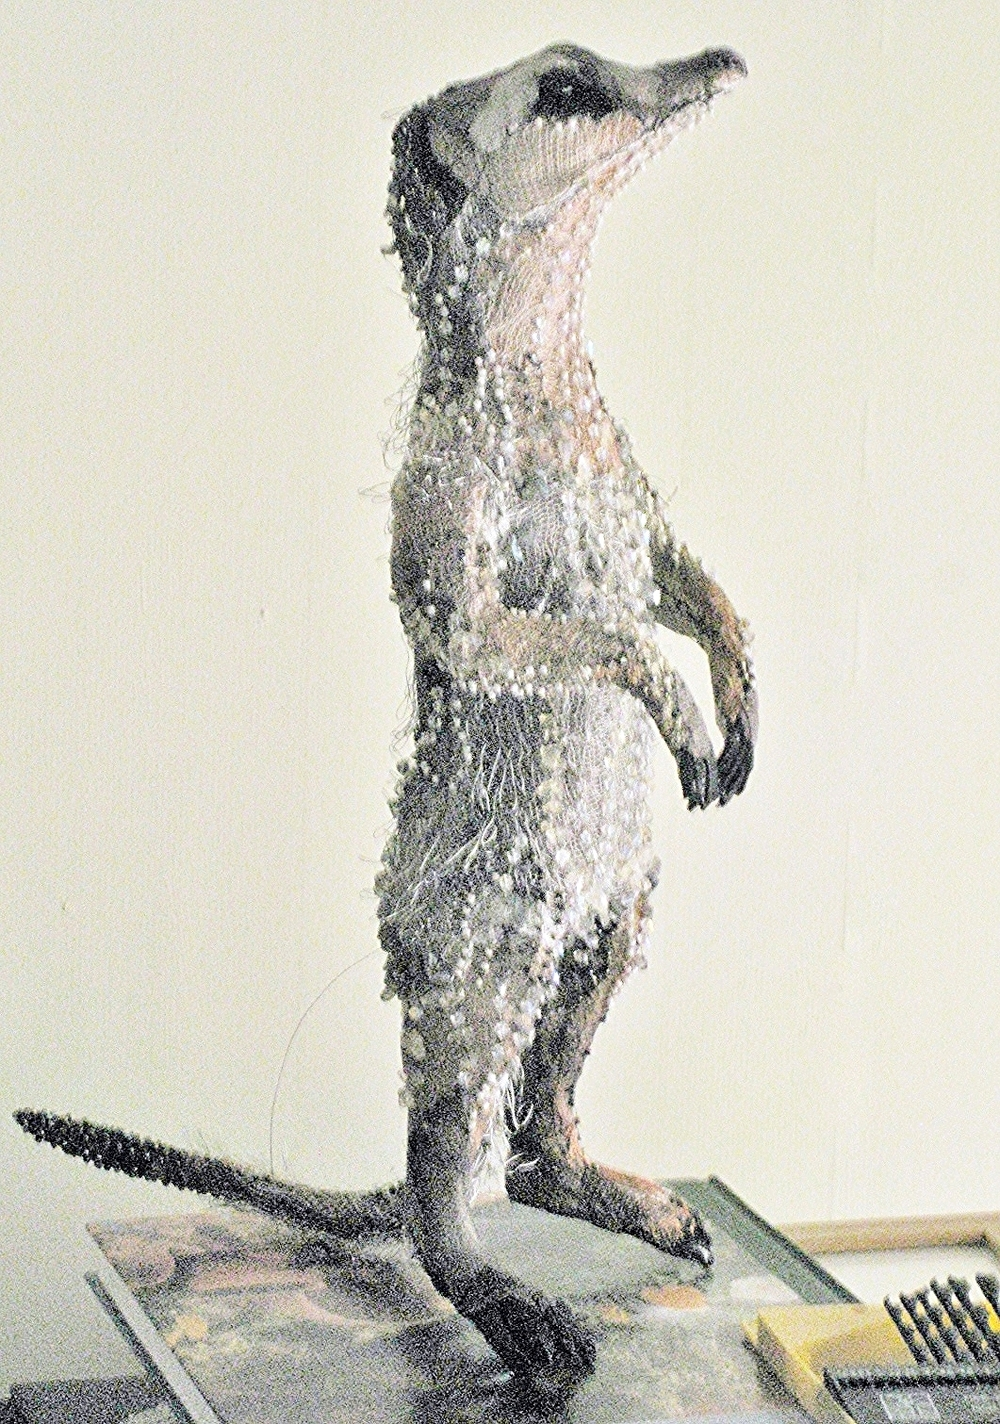 Beaded Meerkat  |  Photography by Susan Horth